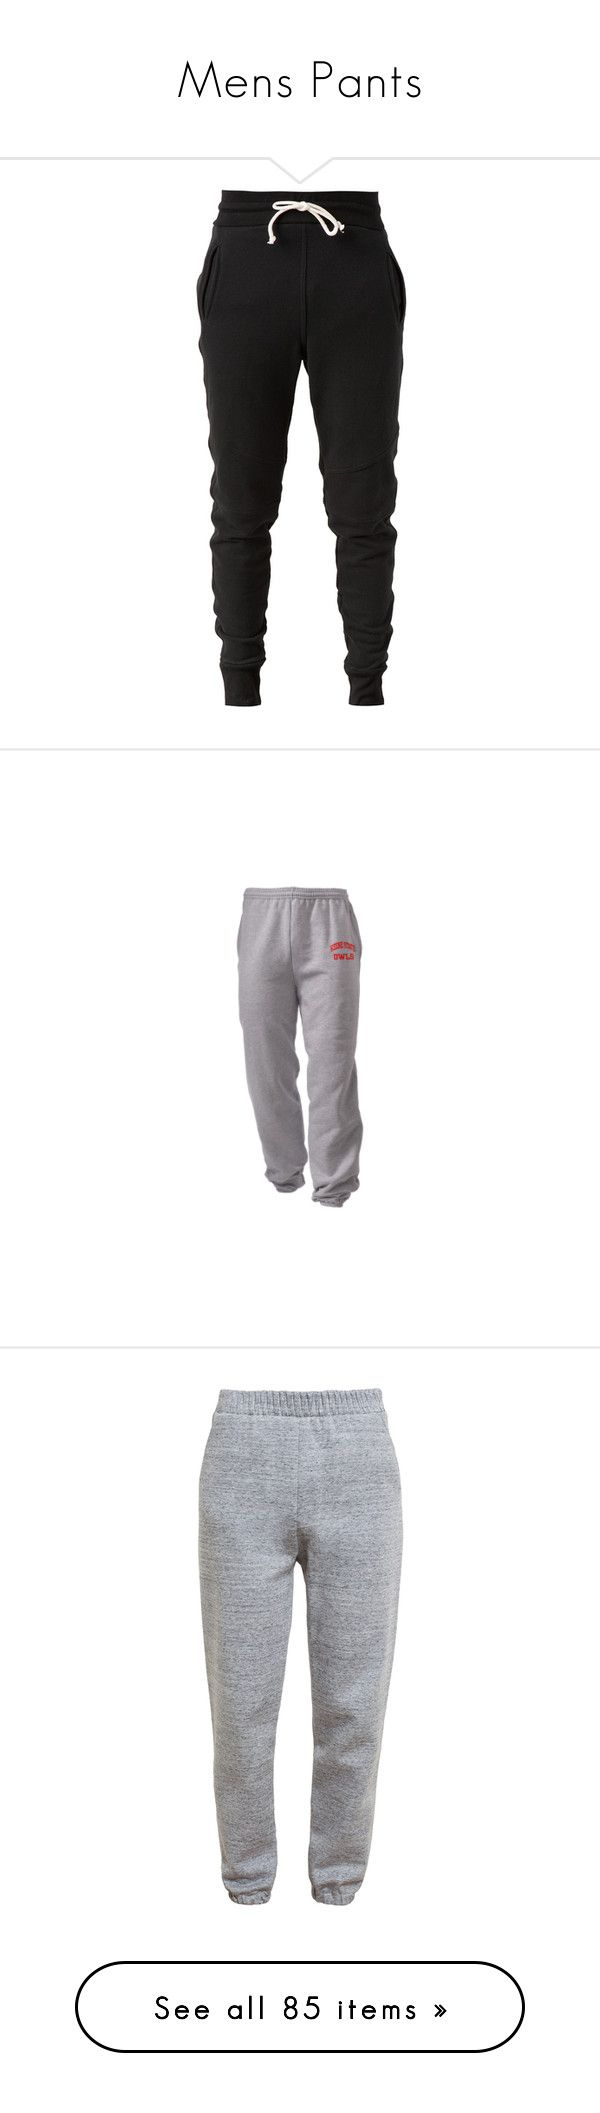 """""""Mens Pants"""" by janay1206 ❤ liked on Polyvore featuring men's fashion, men's clothing, men's activewear, men's activewear pants, pants, bottoms, jeans, sweatpants, sweats and activewear"""